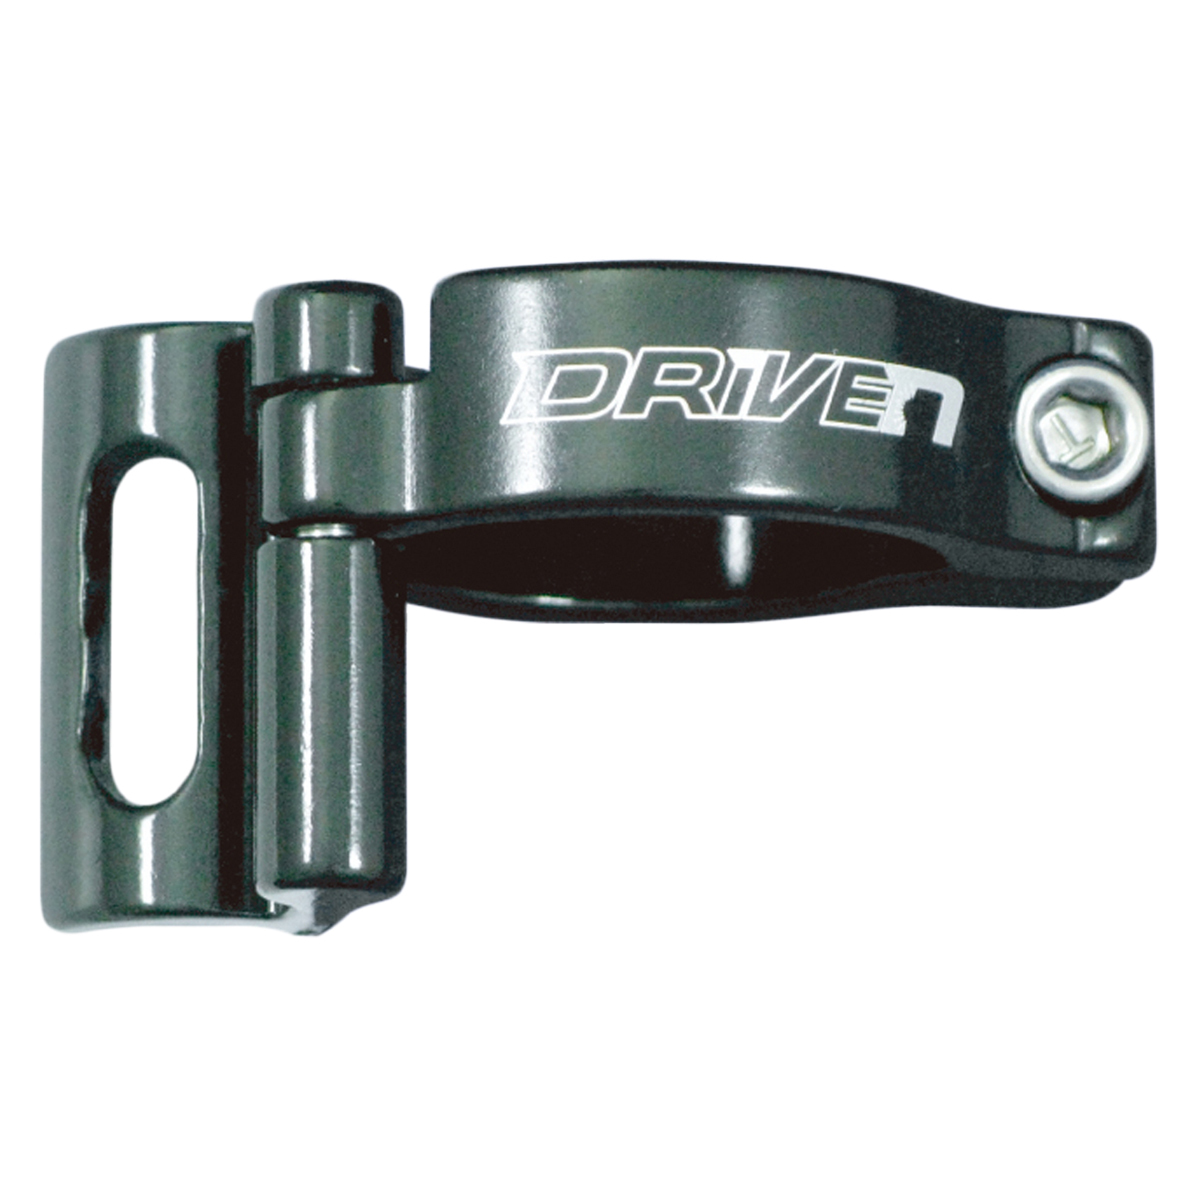 Sunrace Bz-On Front Derailleur Clamp Adapter 28.6mm